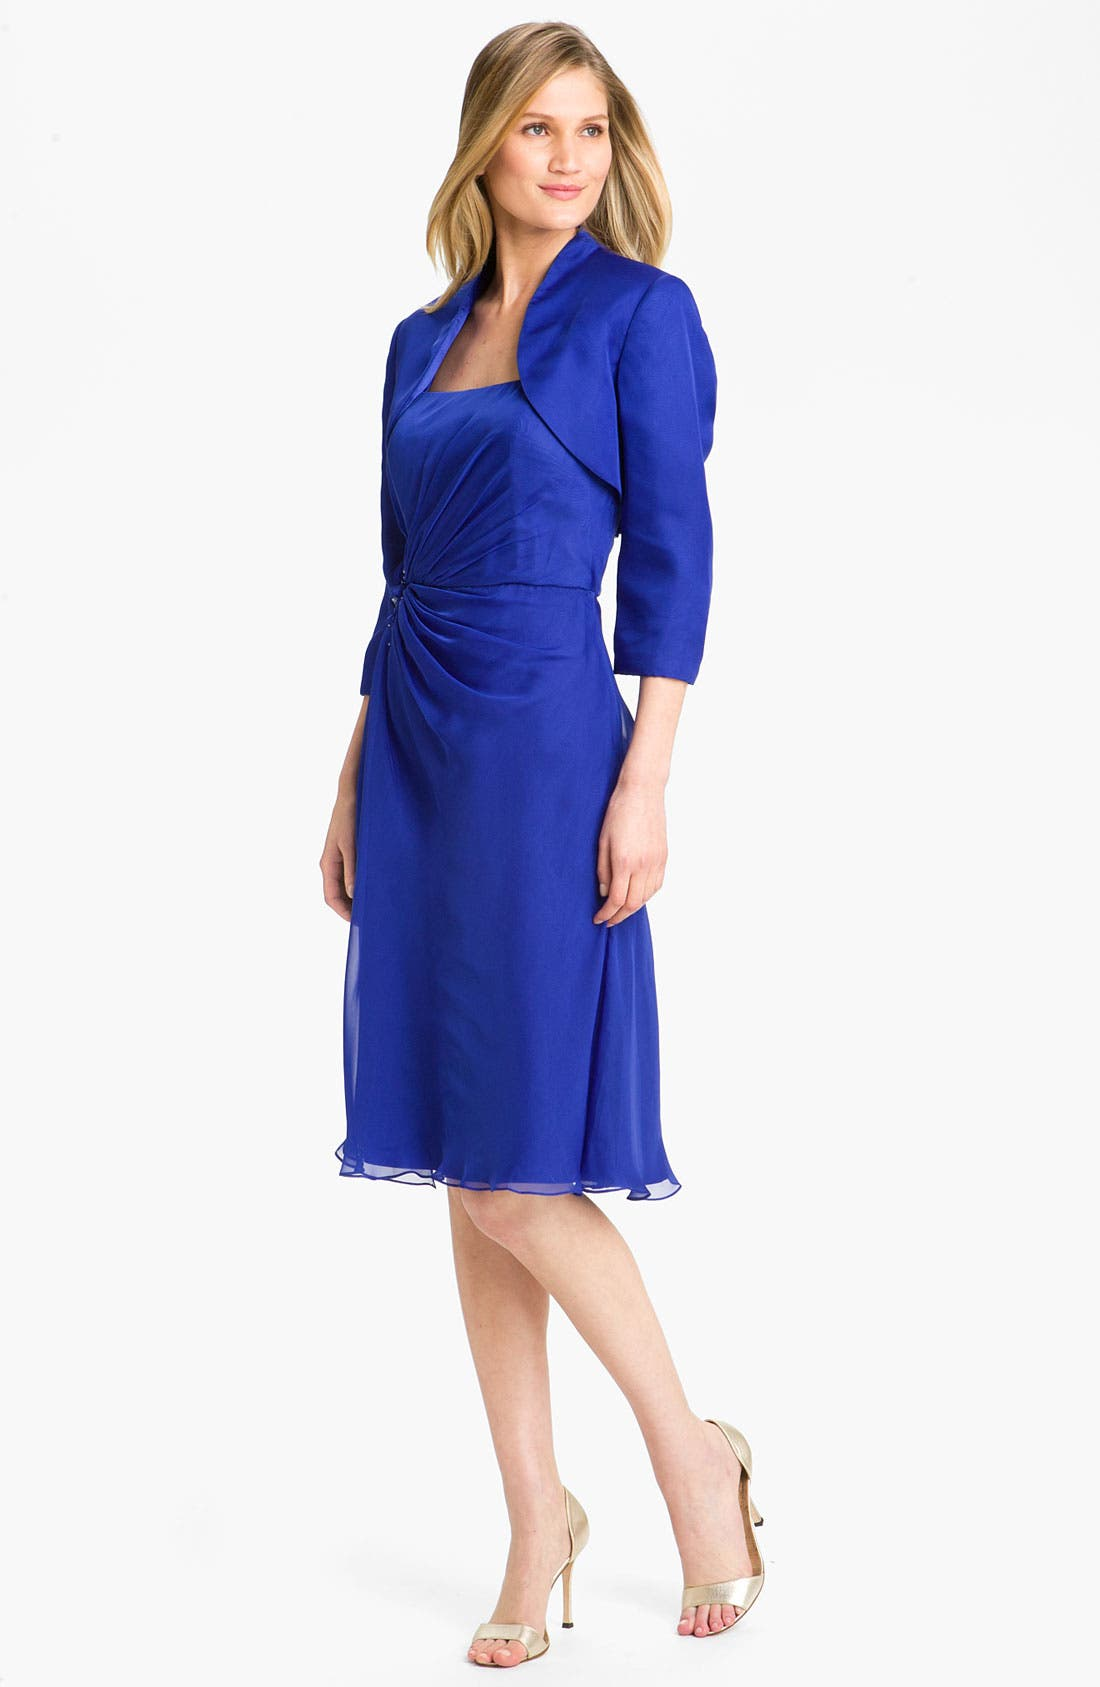 Alternate Image 1 Selected - Veni Infantino Ruched Chiffon Dress & Bolero